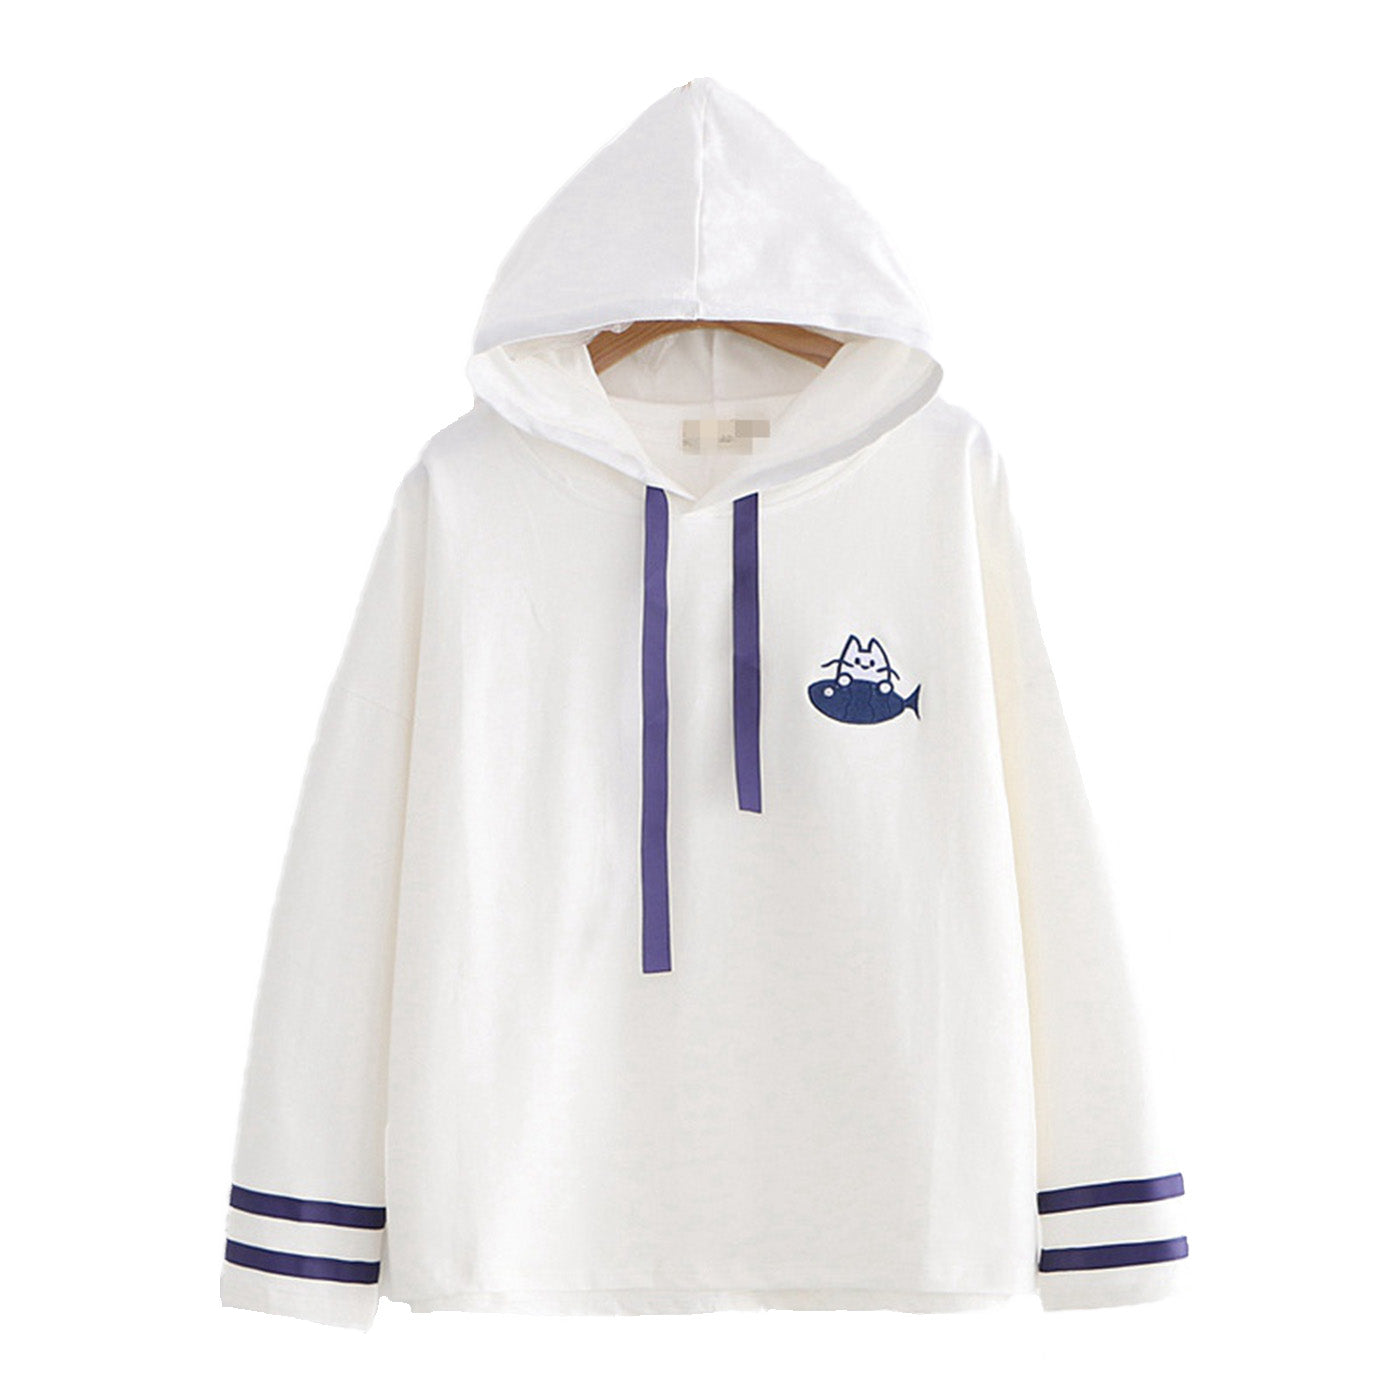 CORIRESHA Cute Cat and Fish Embroidery Hoodie